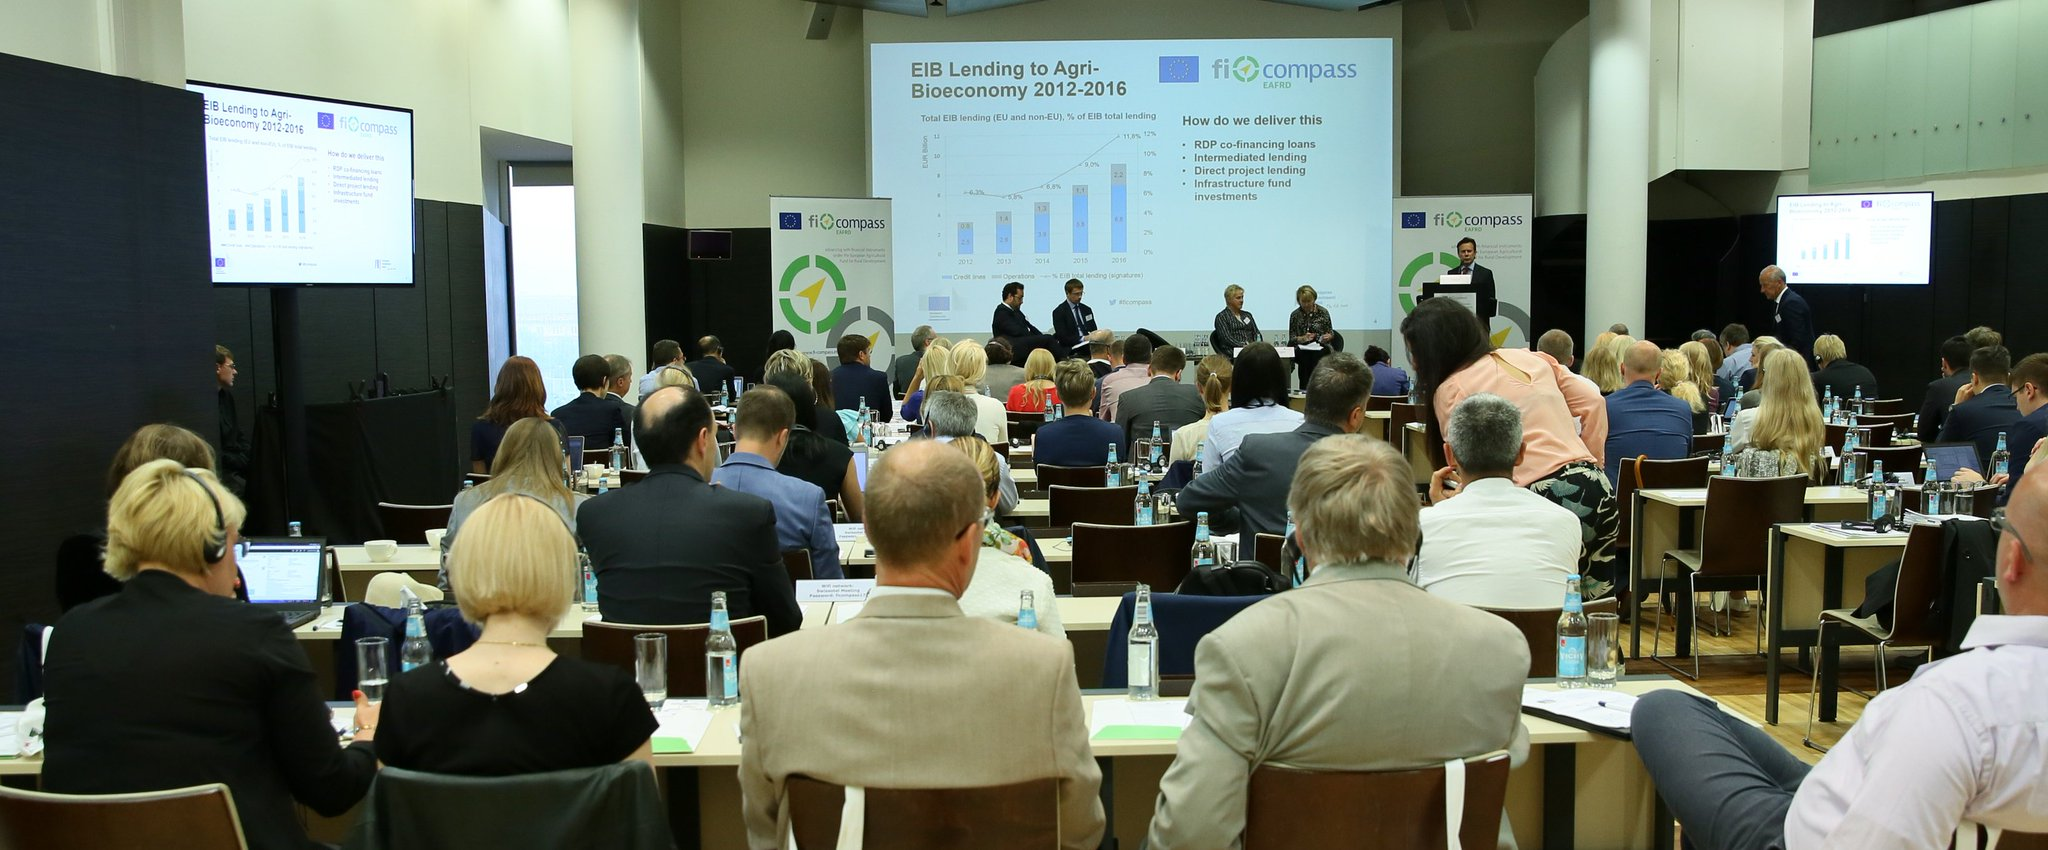 More info on EIB Group help for Member States + other topics are on the #ficompass agenda this afternoon in Tallinn https://t.co/jvYD8Sxgnr https://t.co/VypkcioSlO